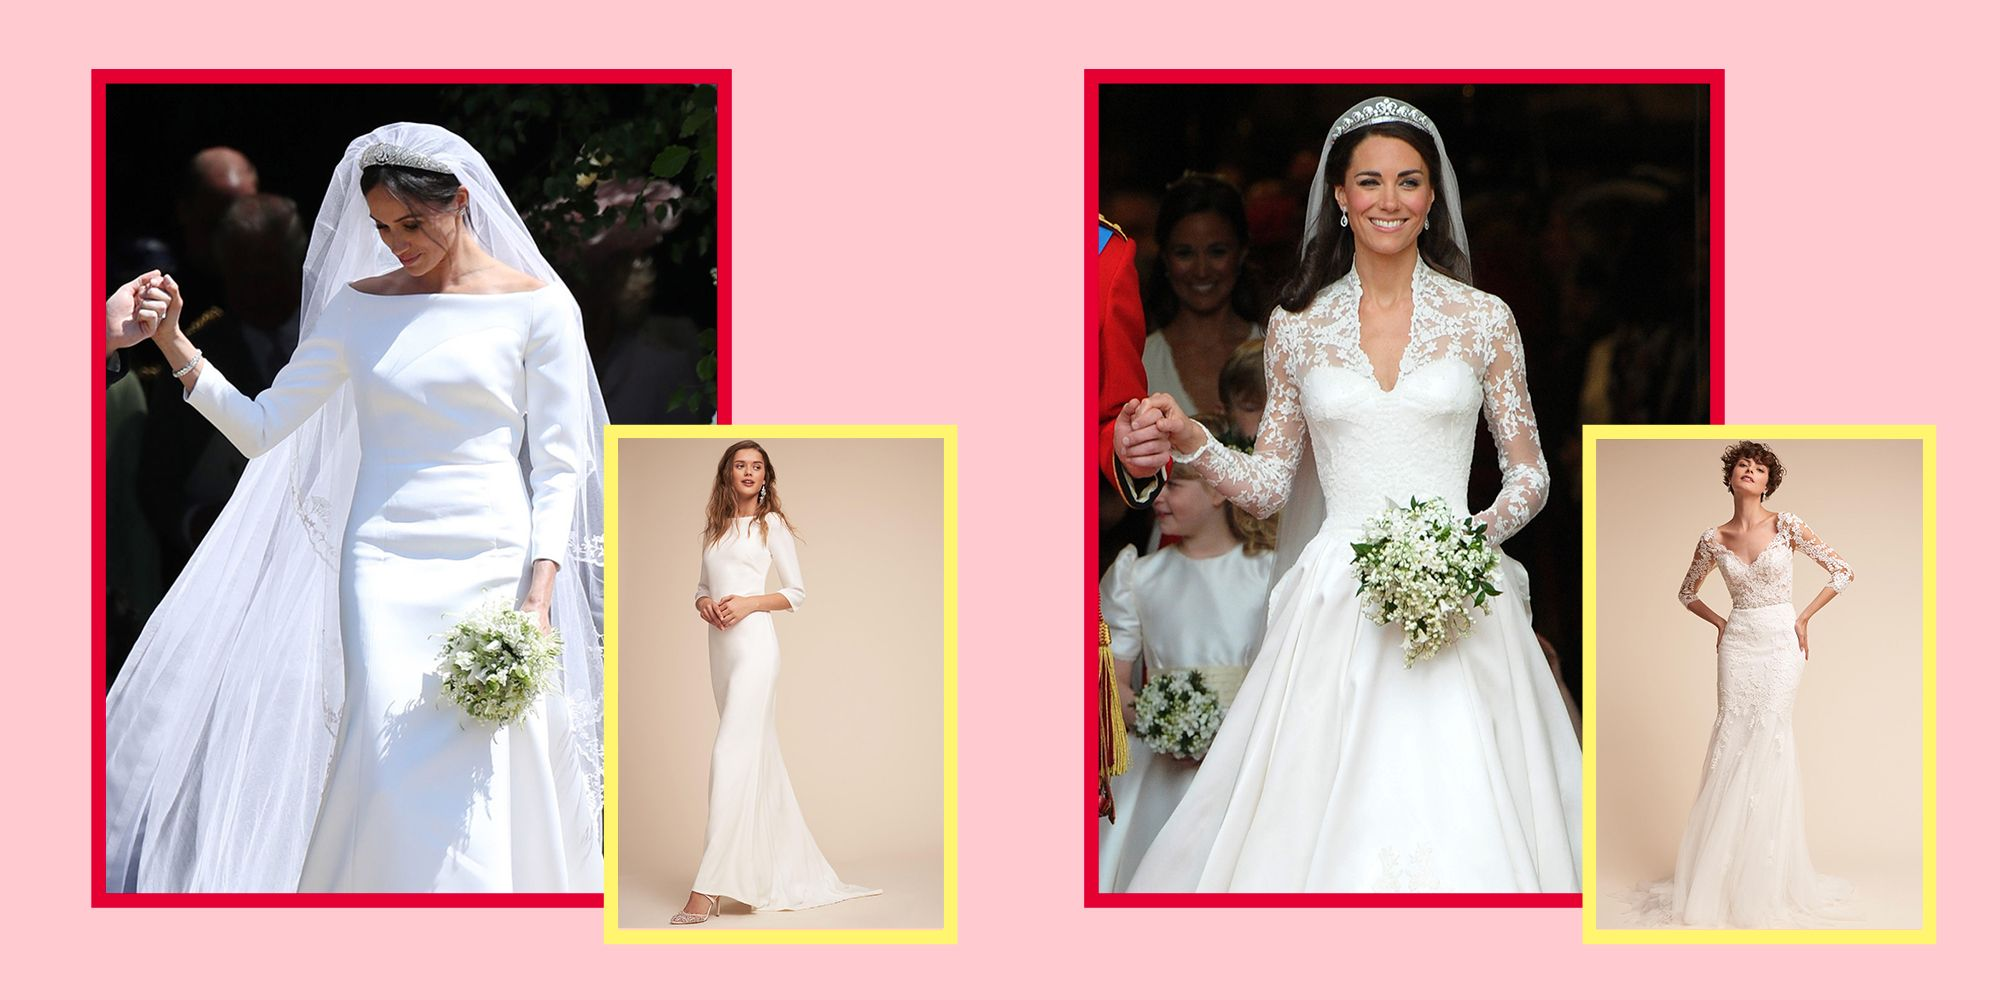 6b0070d5a52 Shop Celebrity-Inspired Wedding Dresses - Best Celebrity Wedding Dresses